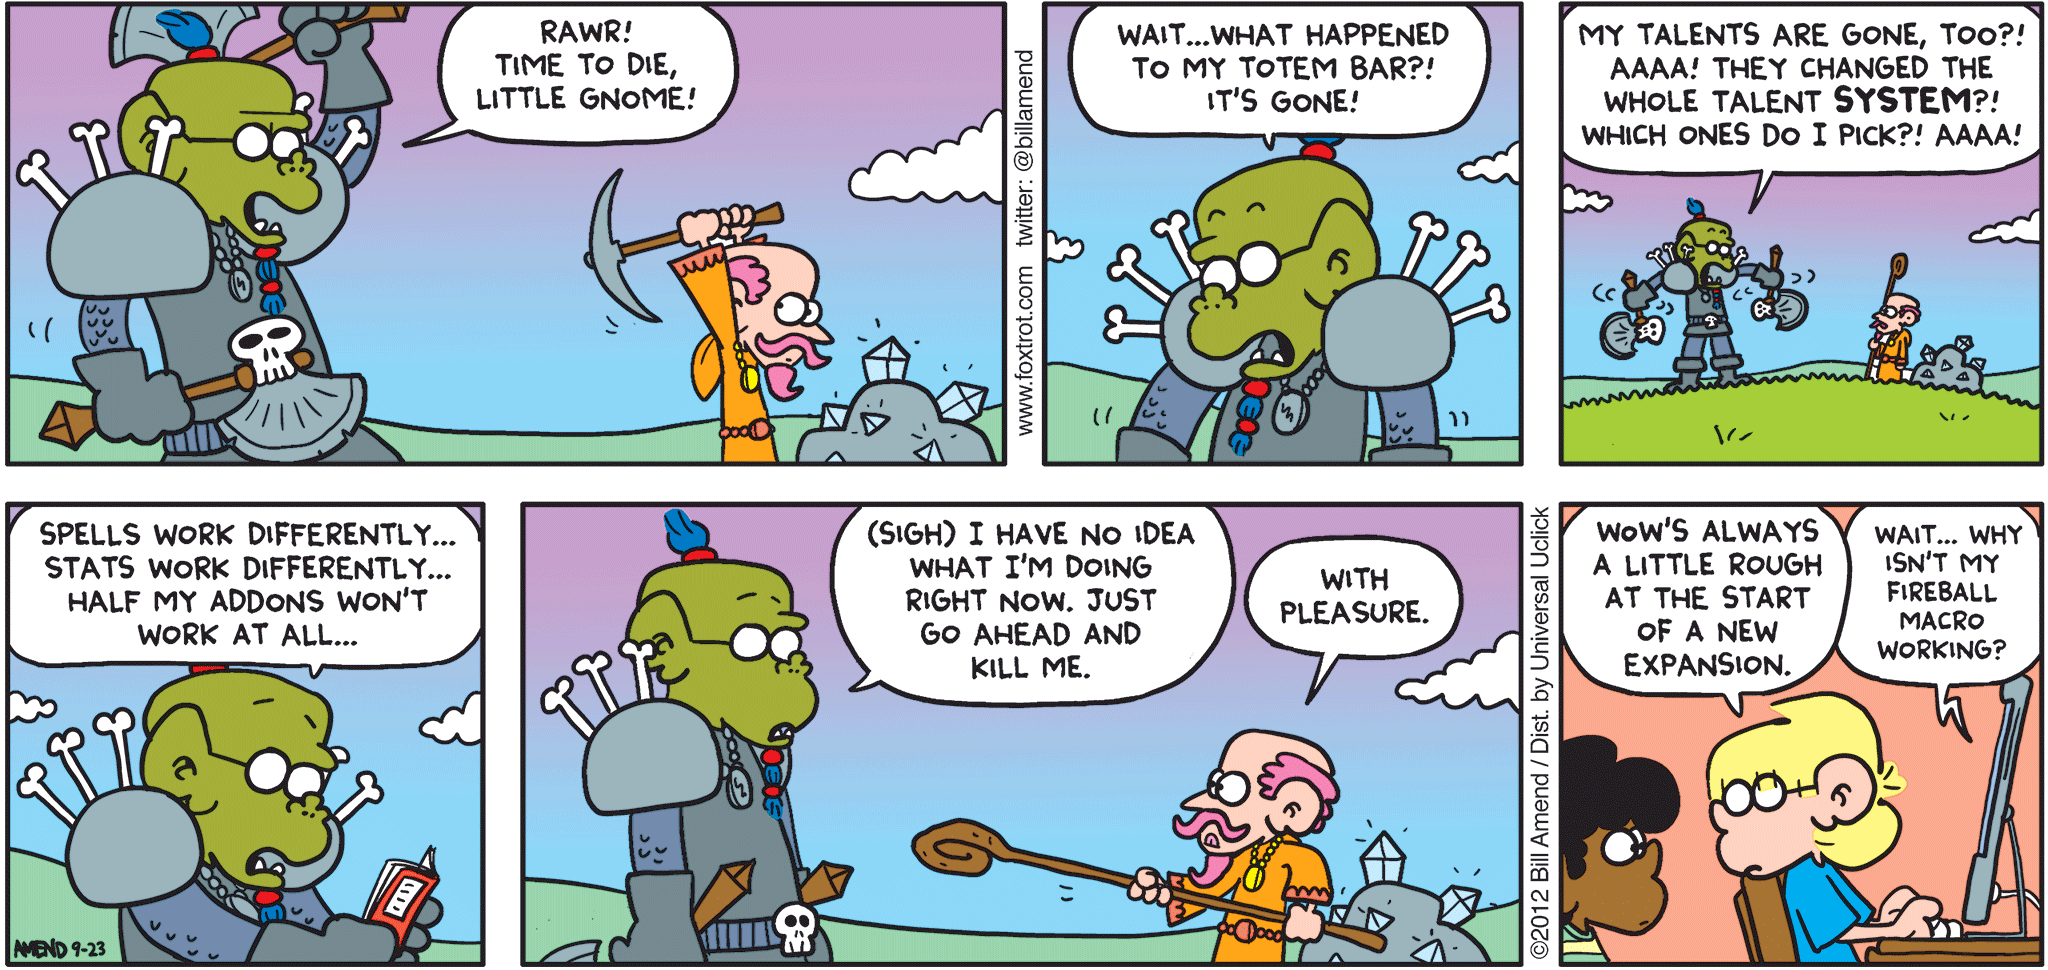 "FoxTrot comic strip by Bill Amend - ""Expansion Blues"" published September 23, 2012 - Ogre: Rawr! Time to die, little gnome! Wait...what happened to my totem bar?! It's gone! My talents are gone, too? Aaaa! They changed the whole talent SYSTEM?! Which ones do I pick?! Aaaa! Spells work differently...stats work differently...half my addons won't work at all...(sigh) I have no idea what I'm doing right now. Just go ahead and kill me. Gnome: With pleasure. Jason: WoW's always a little rough at the start of a new expansion. Gnome: Wait...why isn't my fireball macro working?"